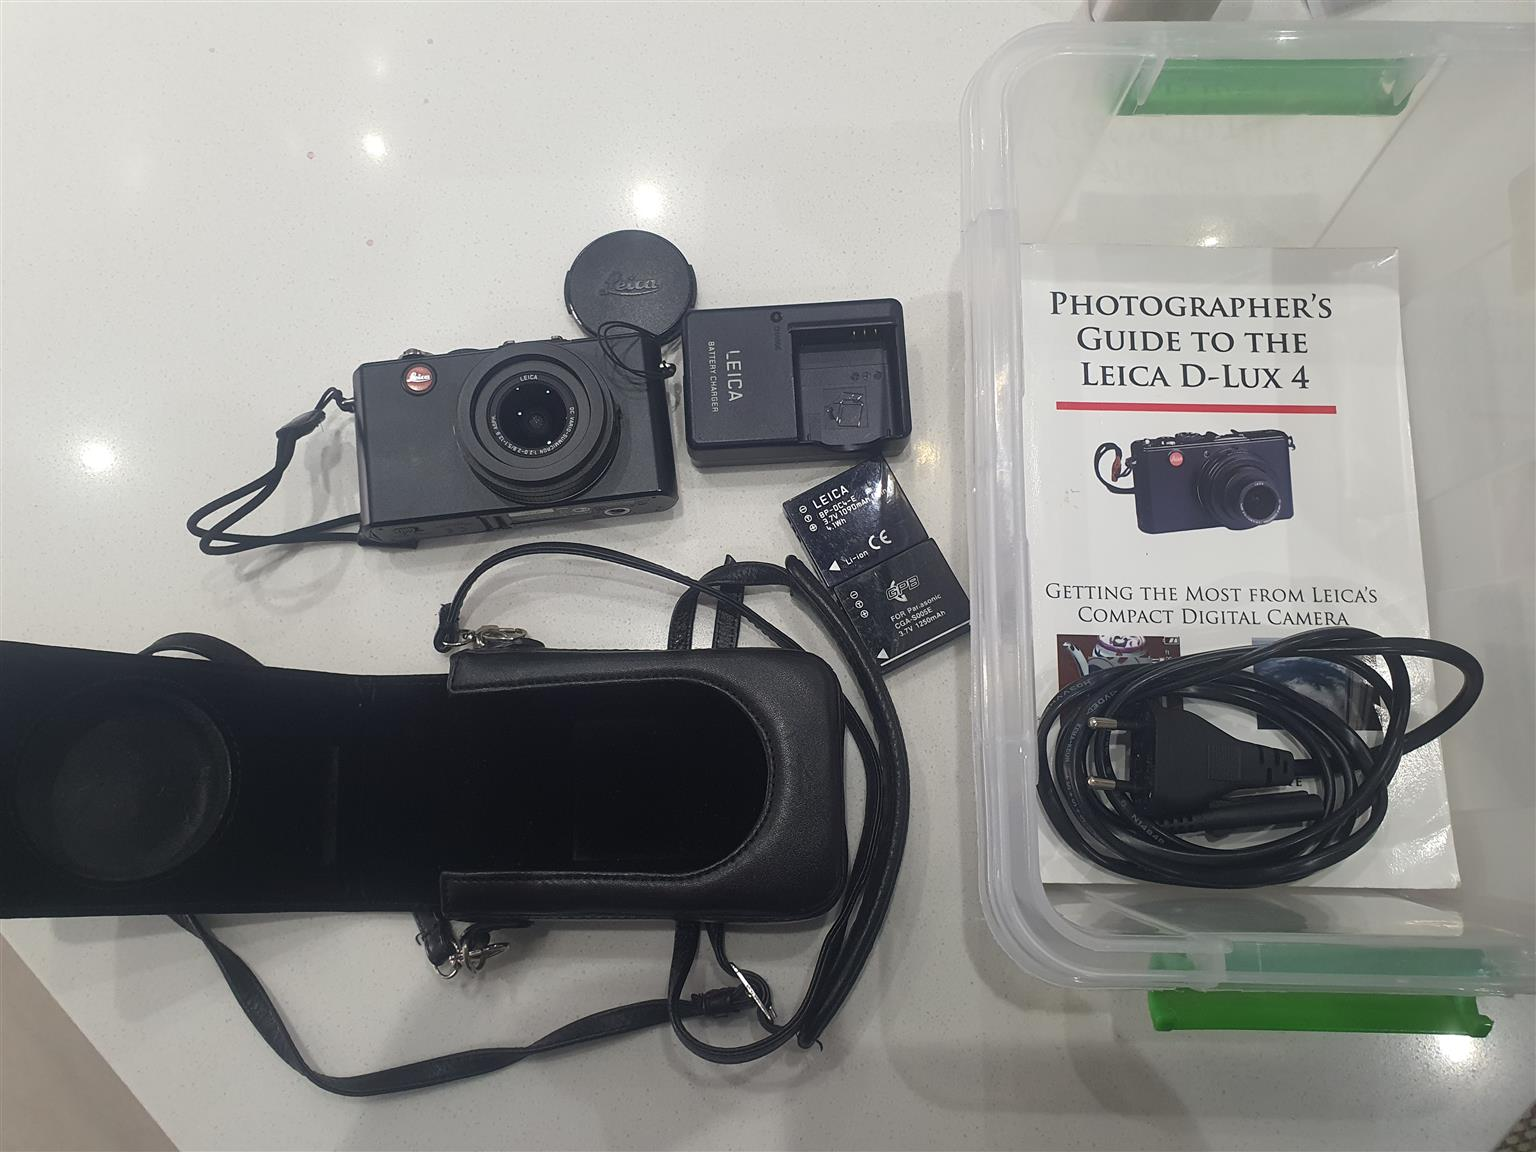 Camera, Leica D lux 4, with leather case, 2 batteries and Guide Book